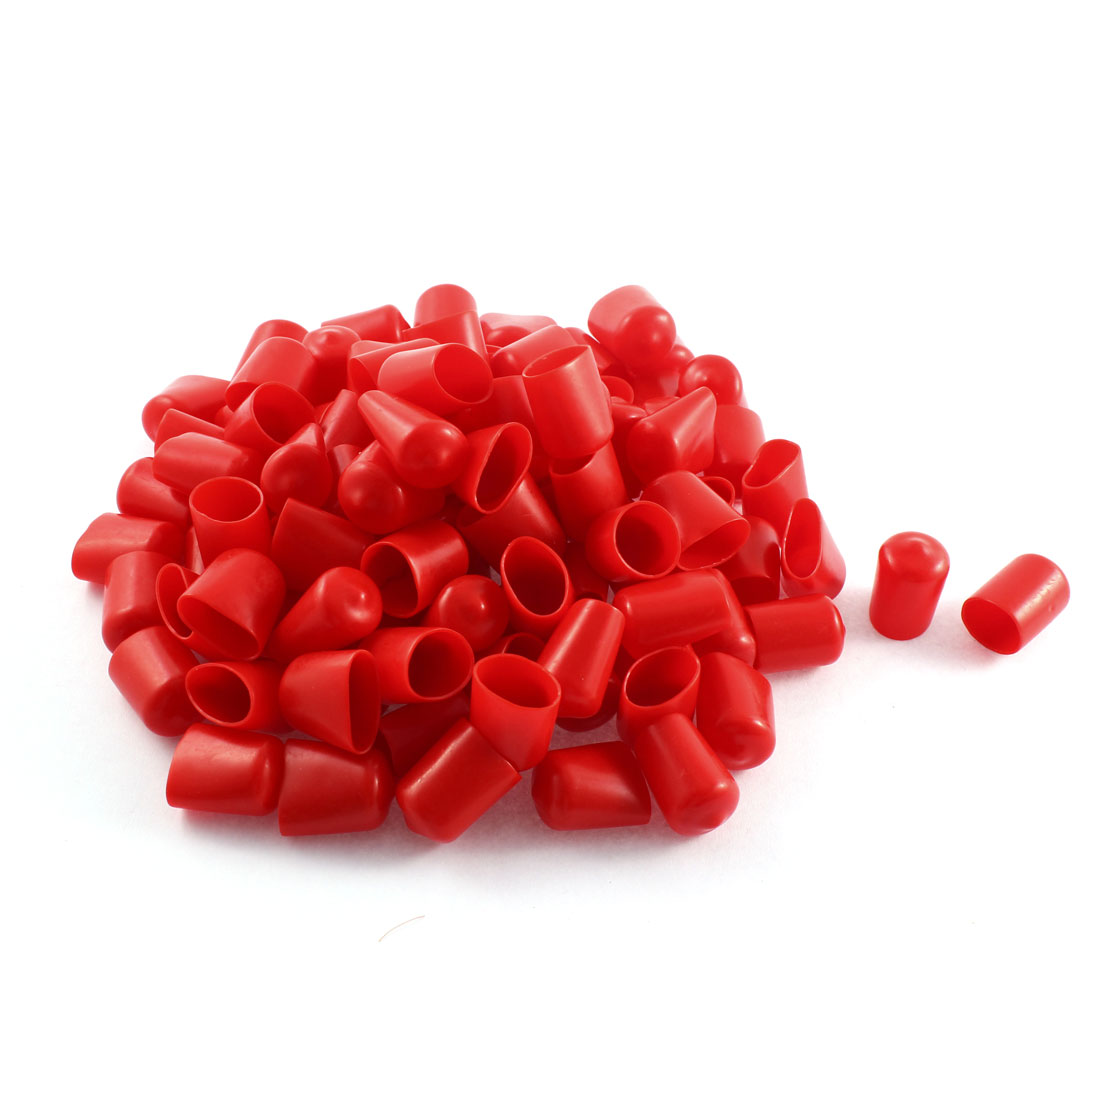 100Pcs Red Soft Plastic PVC Insulated End Sleeves Caps Cover 16mm Dia